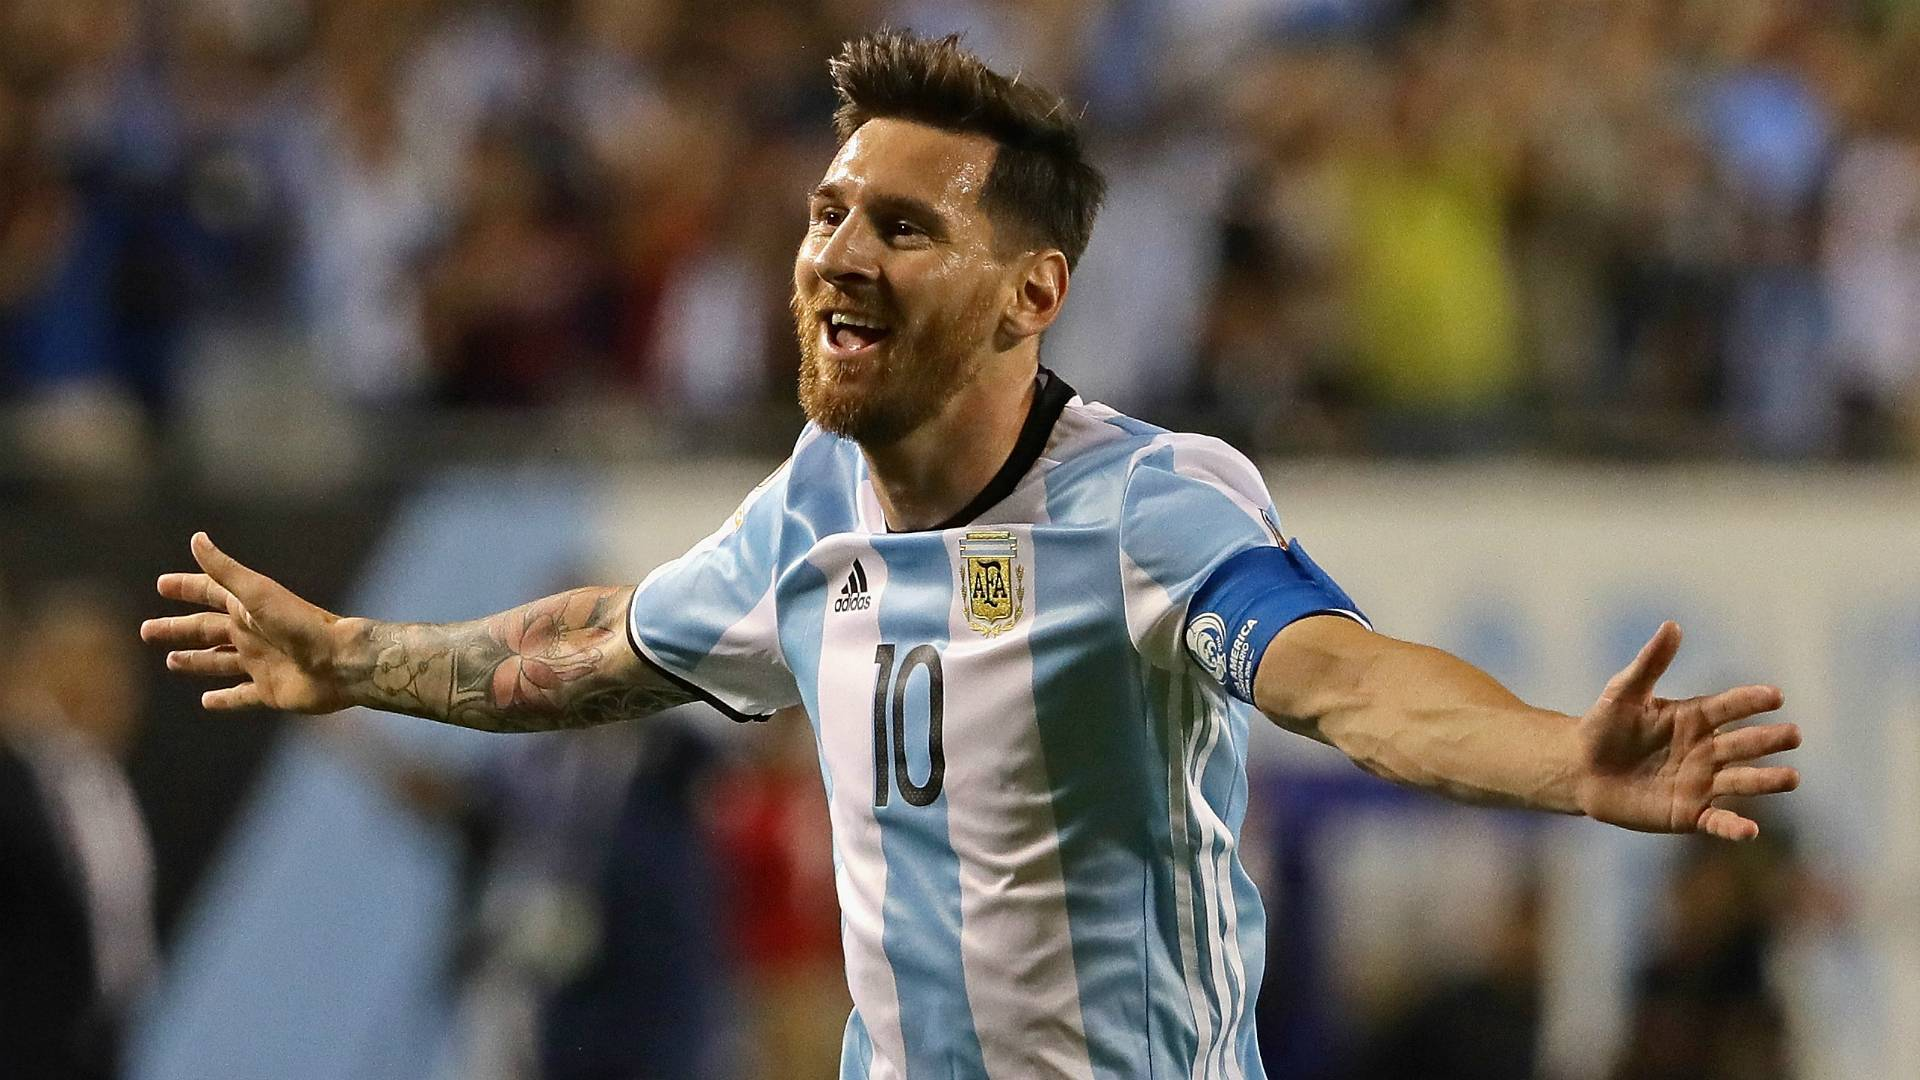 Argentina vs Israel: A Goal Scored for Freedom and Other Untold Stories